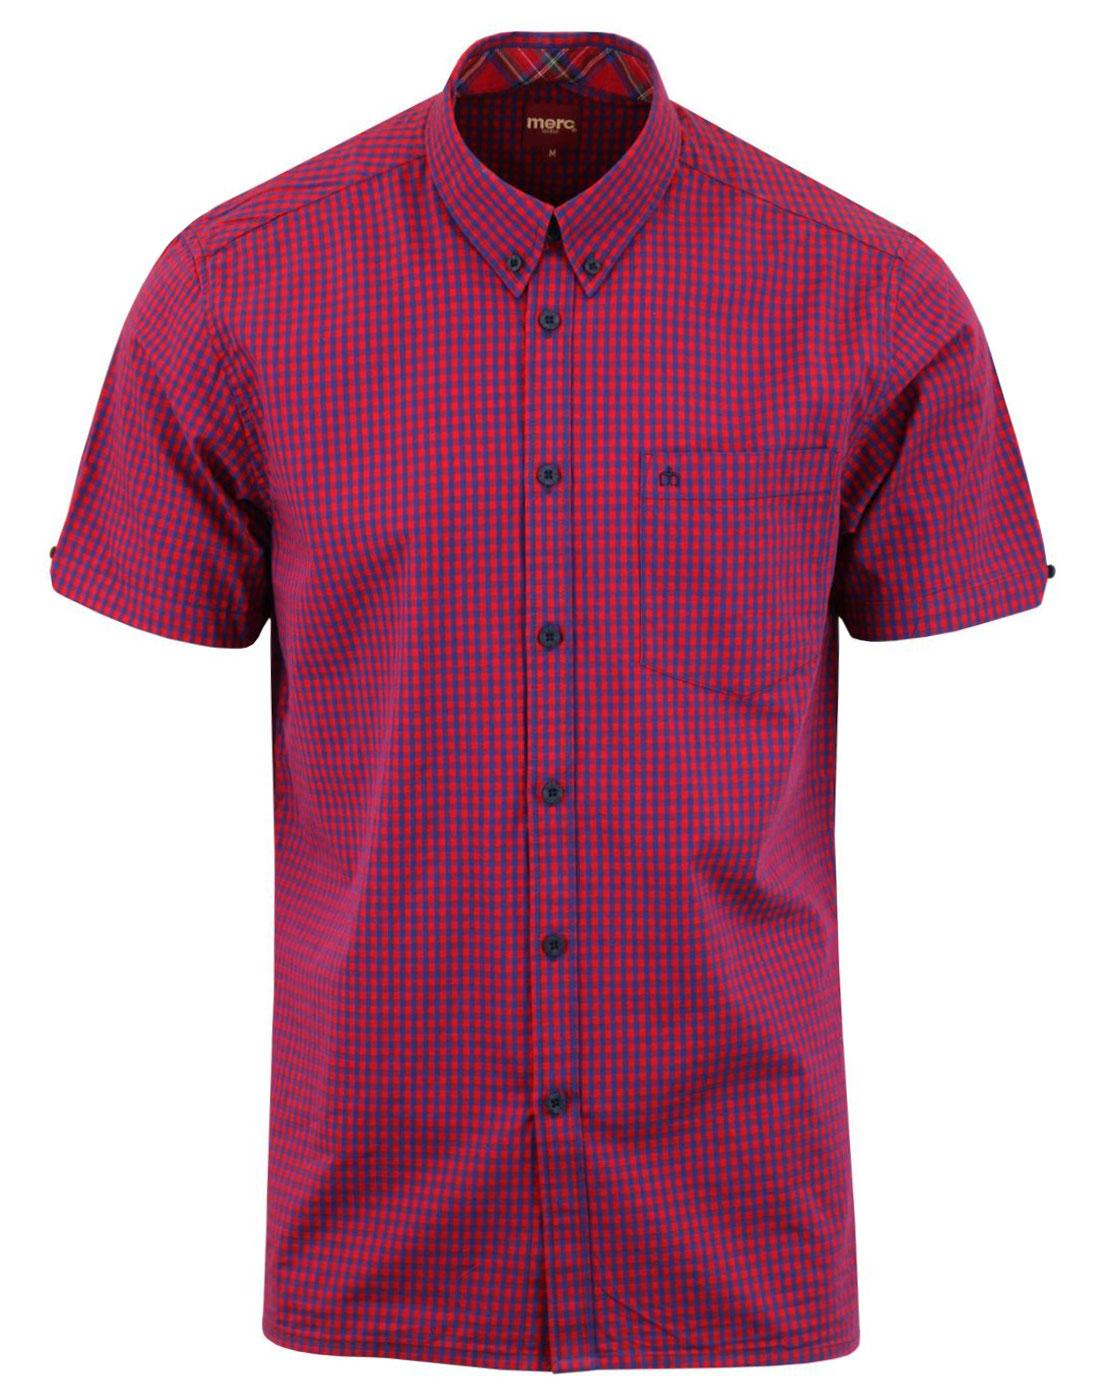 Terry MERC Retro Mod Short Sleeve Gingham Shirt RB